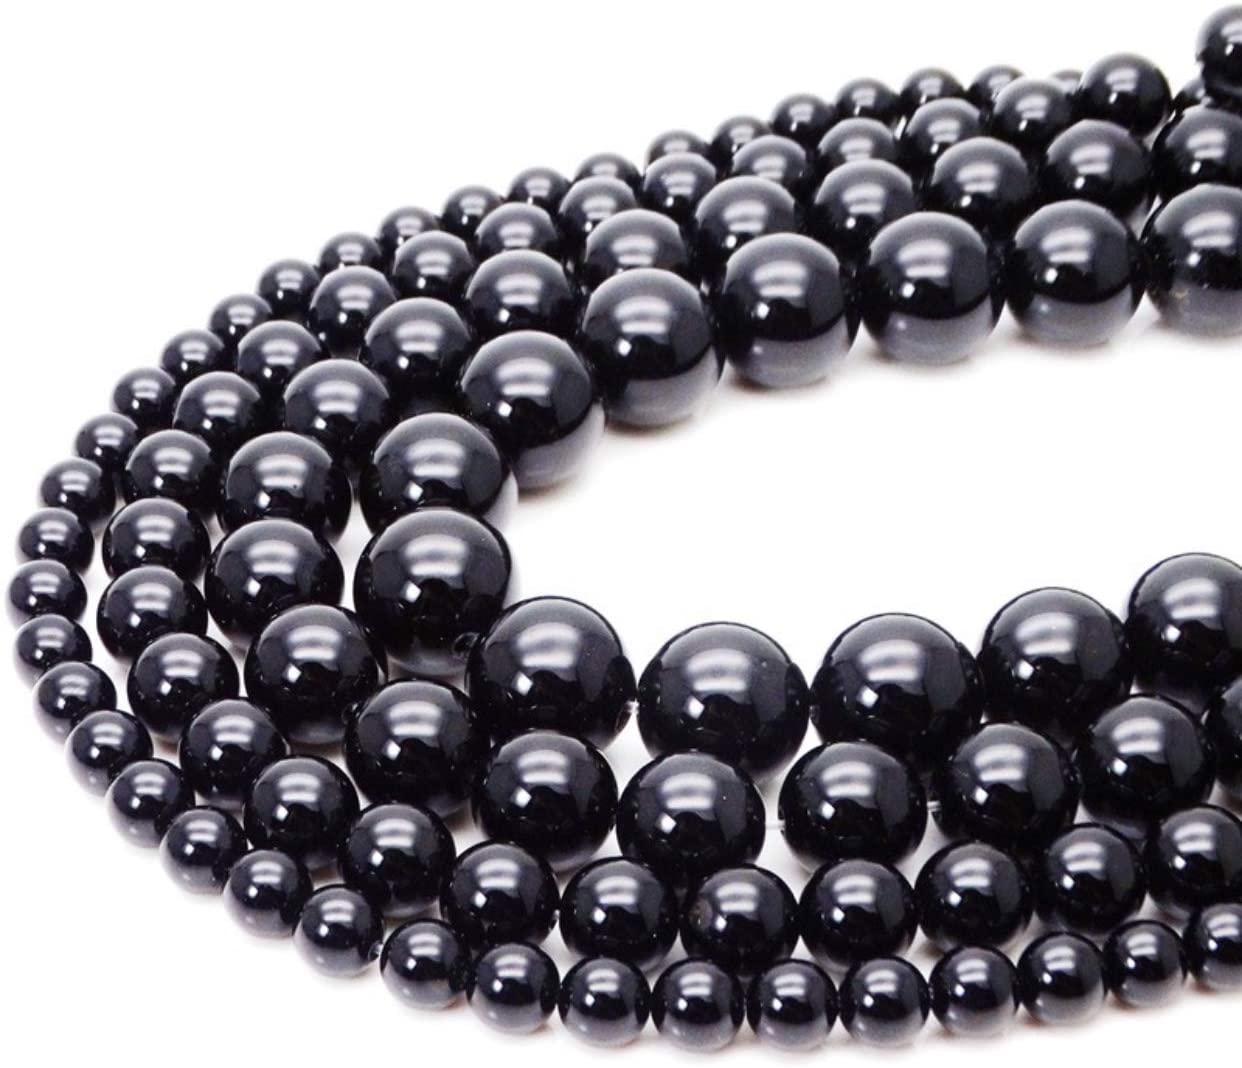 [ABCgems] Russian-Karelian Shungite AKA Type-III Regular Shungite (Guaranteed Electrical Conductivity-Mohs Hardness 4) 4mm Smooth Round Gemstone Healing Energy Beads (Occasionally Pyrite Inclusion)